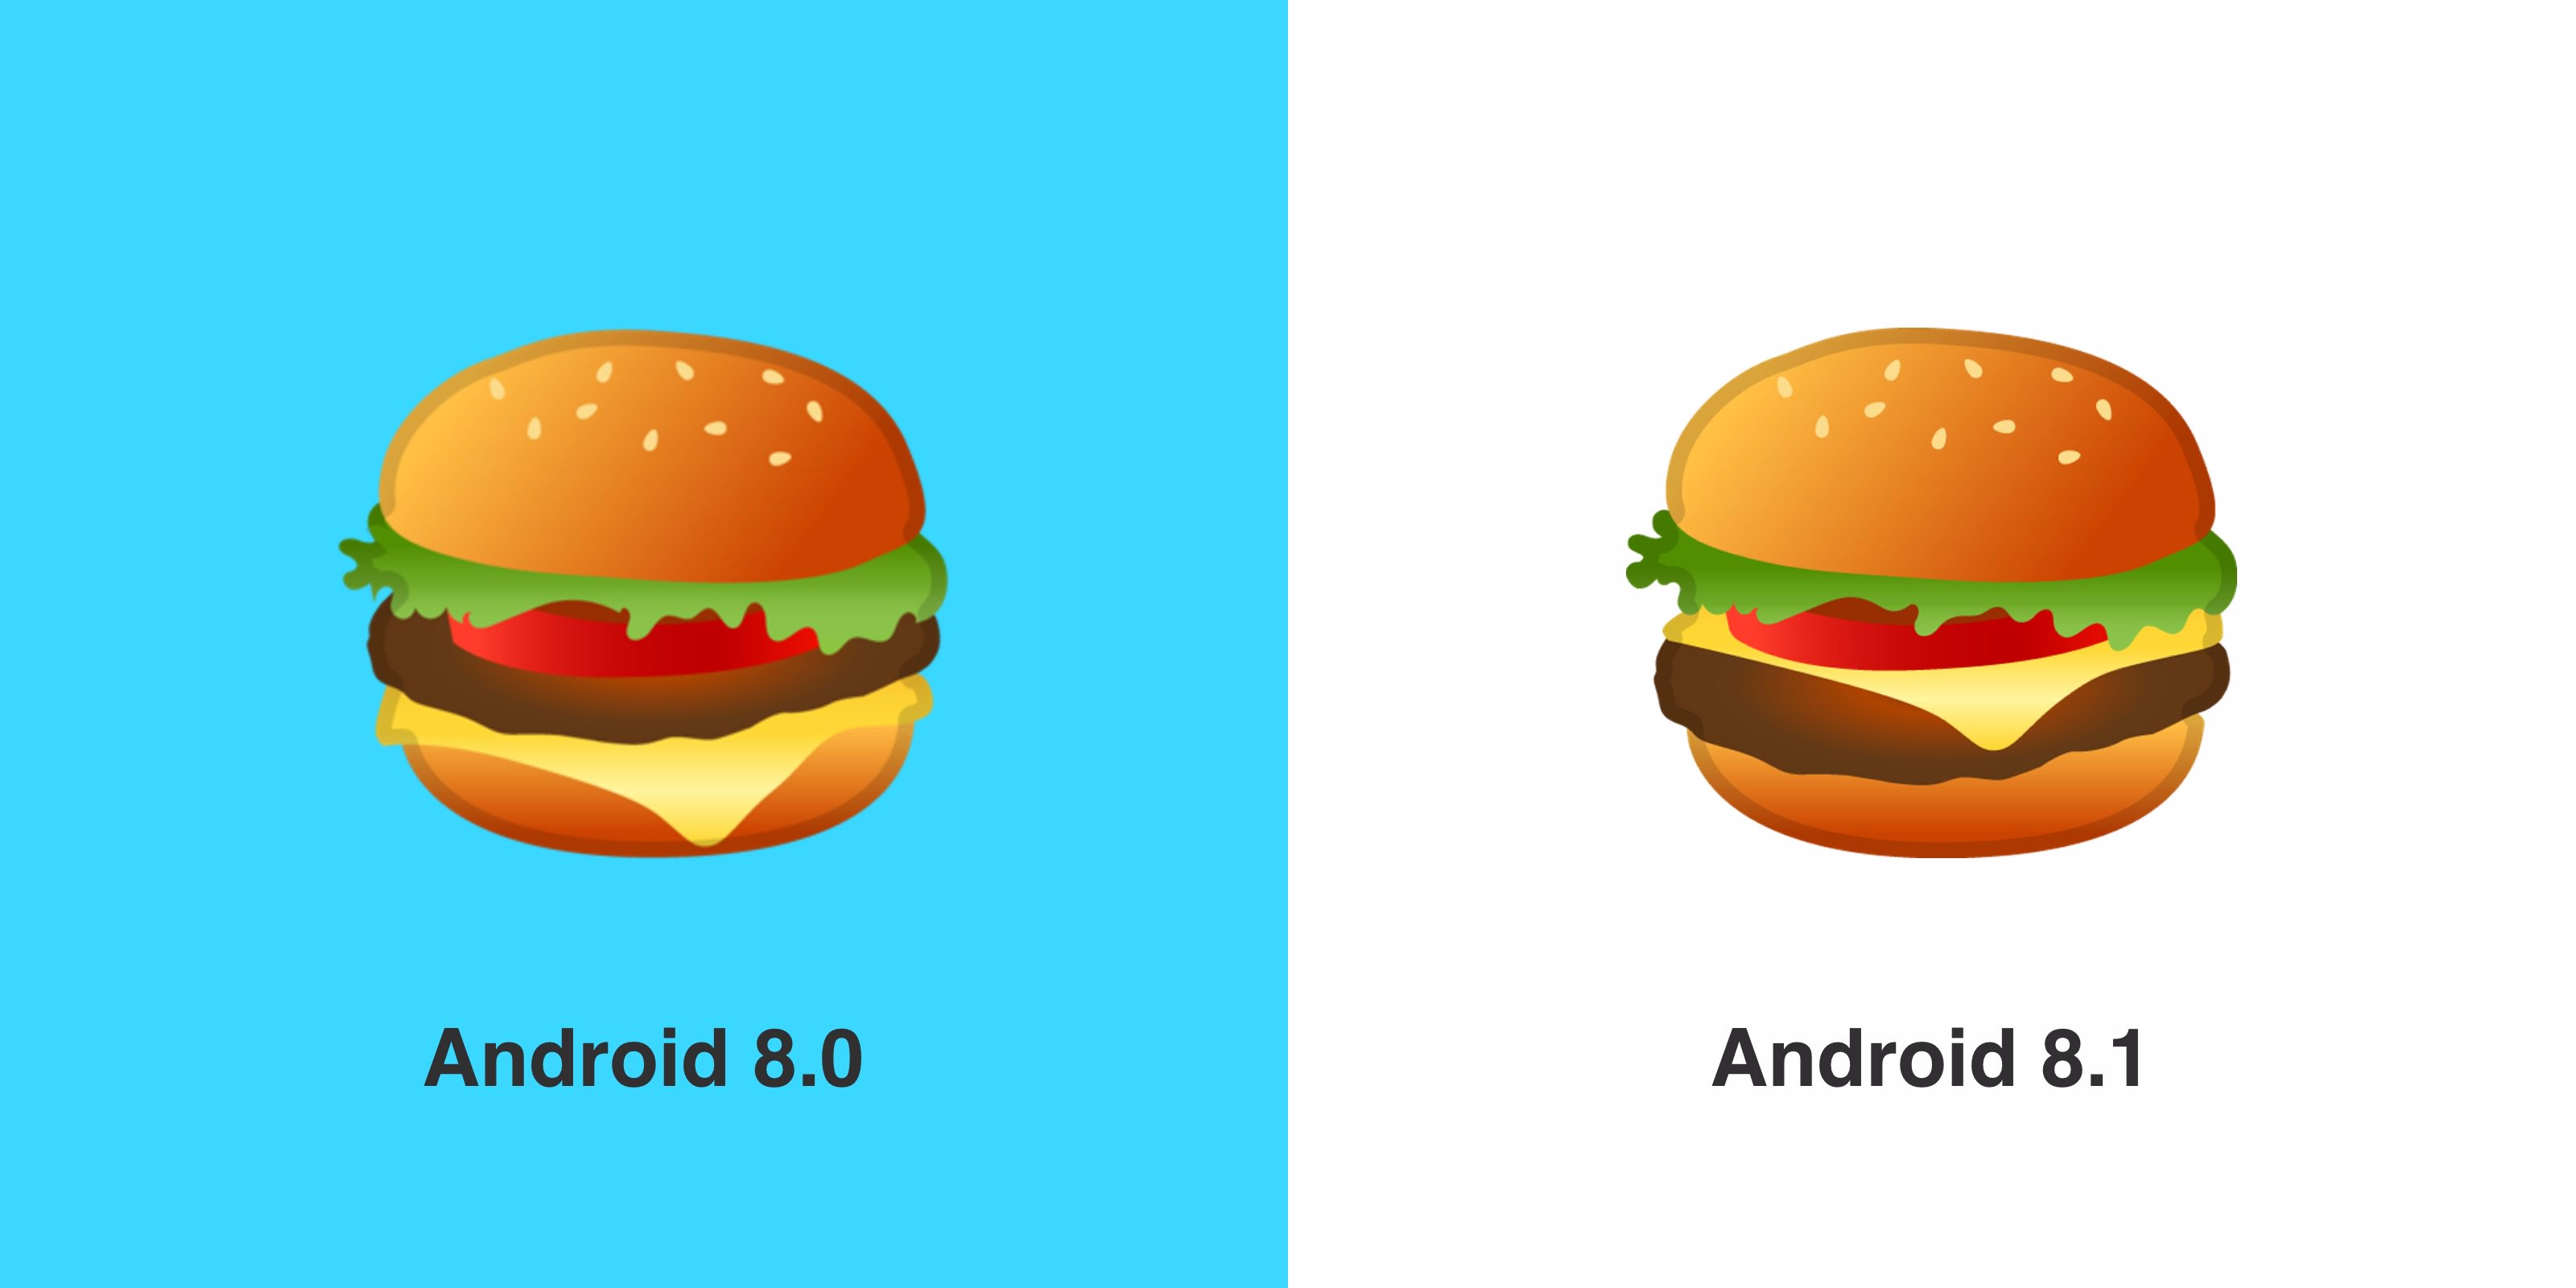 WHEW, Google fixed the burger emoji in Android 8.1